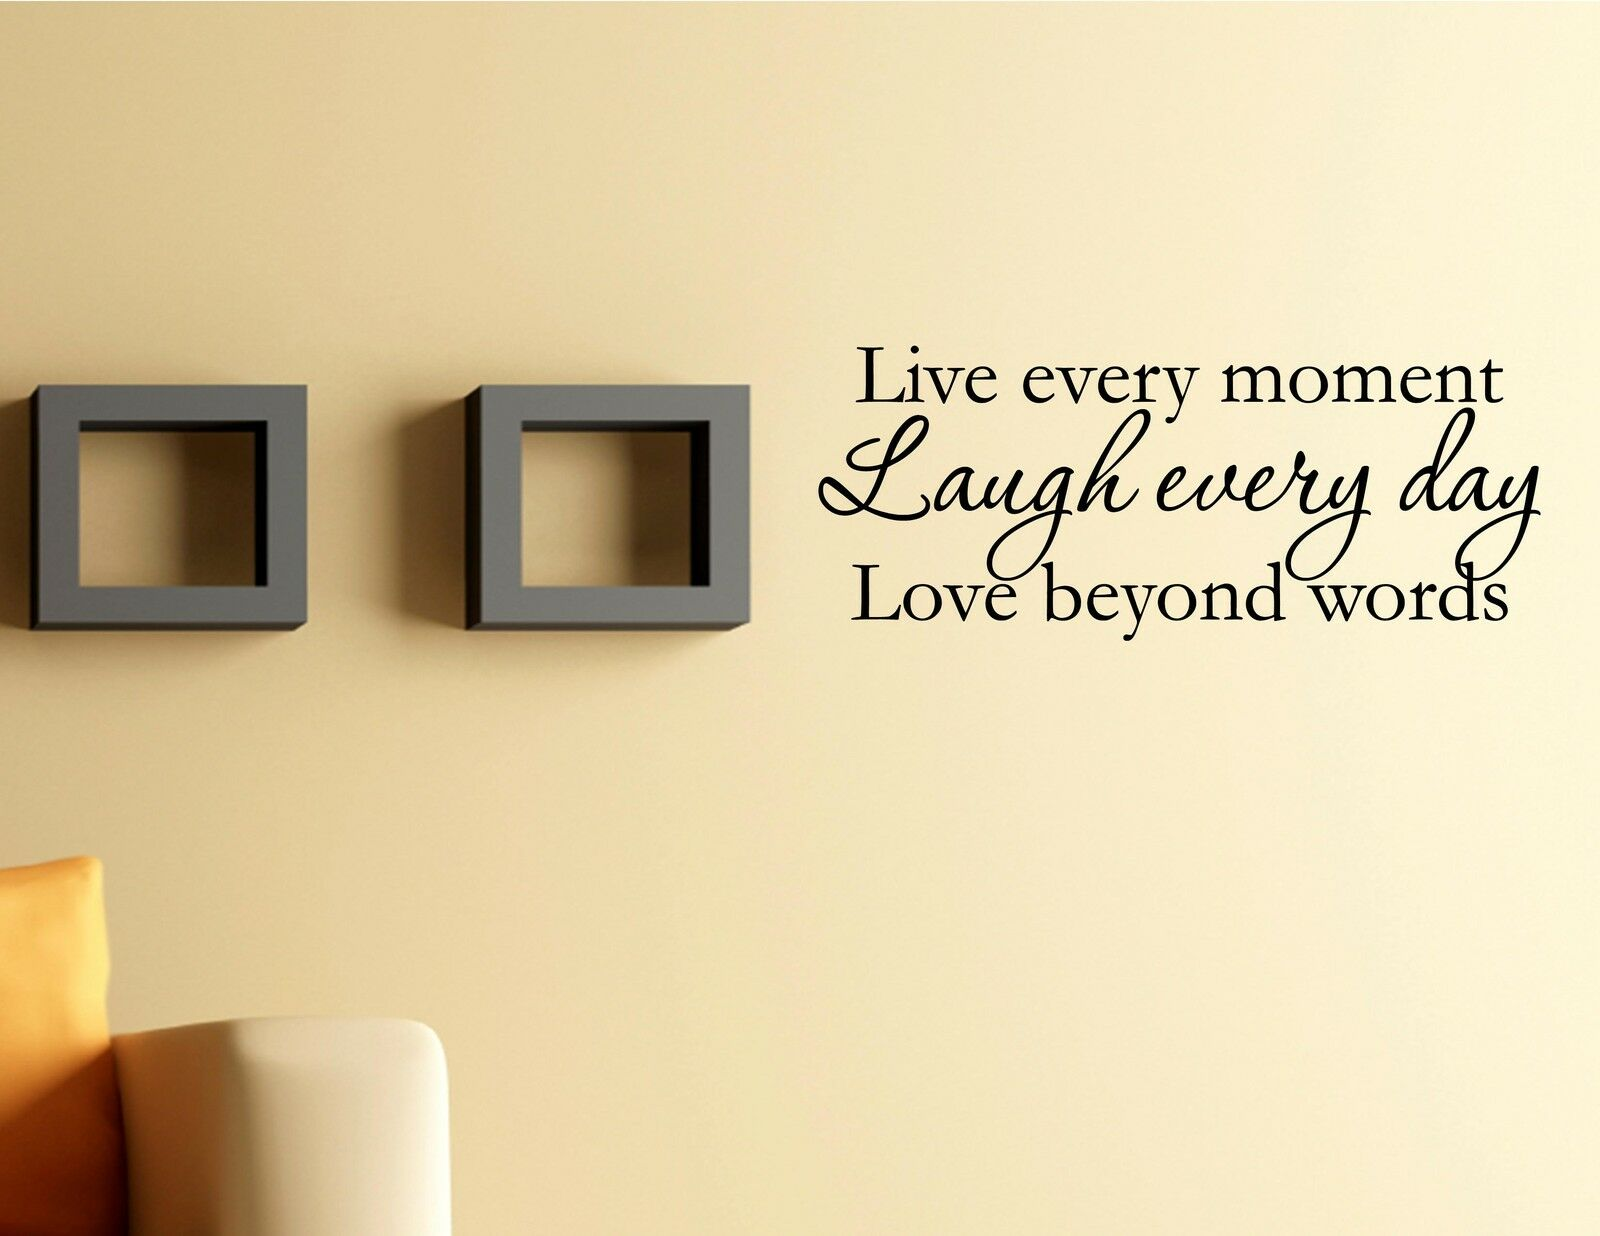 Next Wall Art Stickers Quotes : Vinyl wall decal quotes